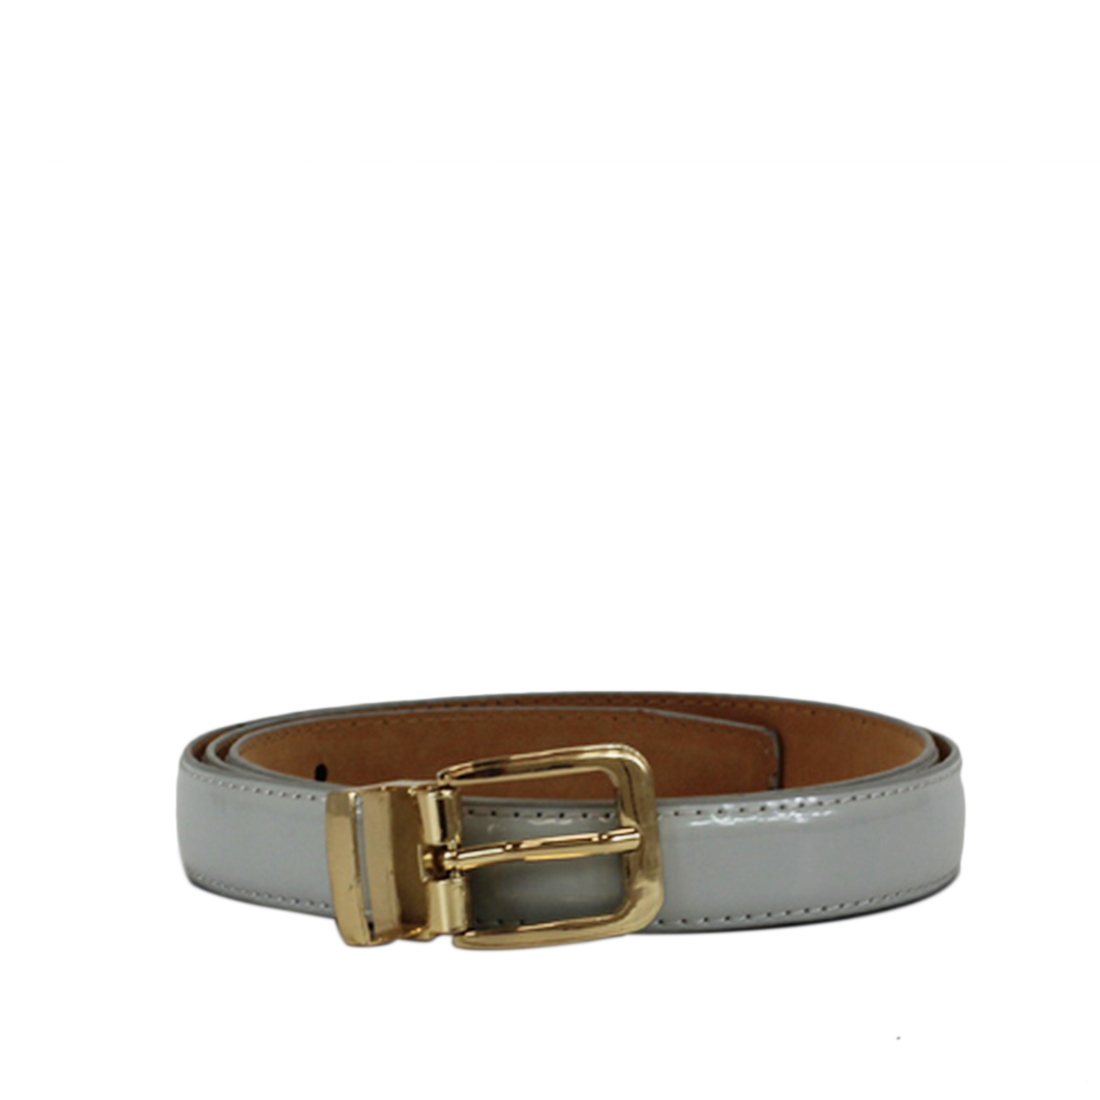 PLAIN WITH SML GOLD BUCKLE